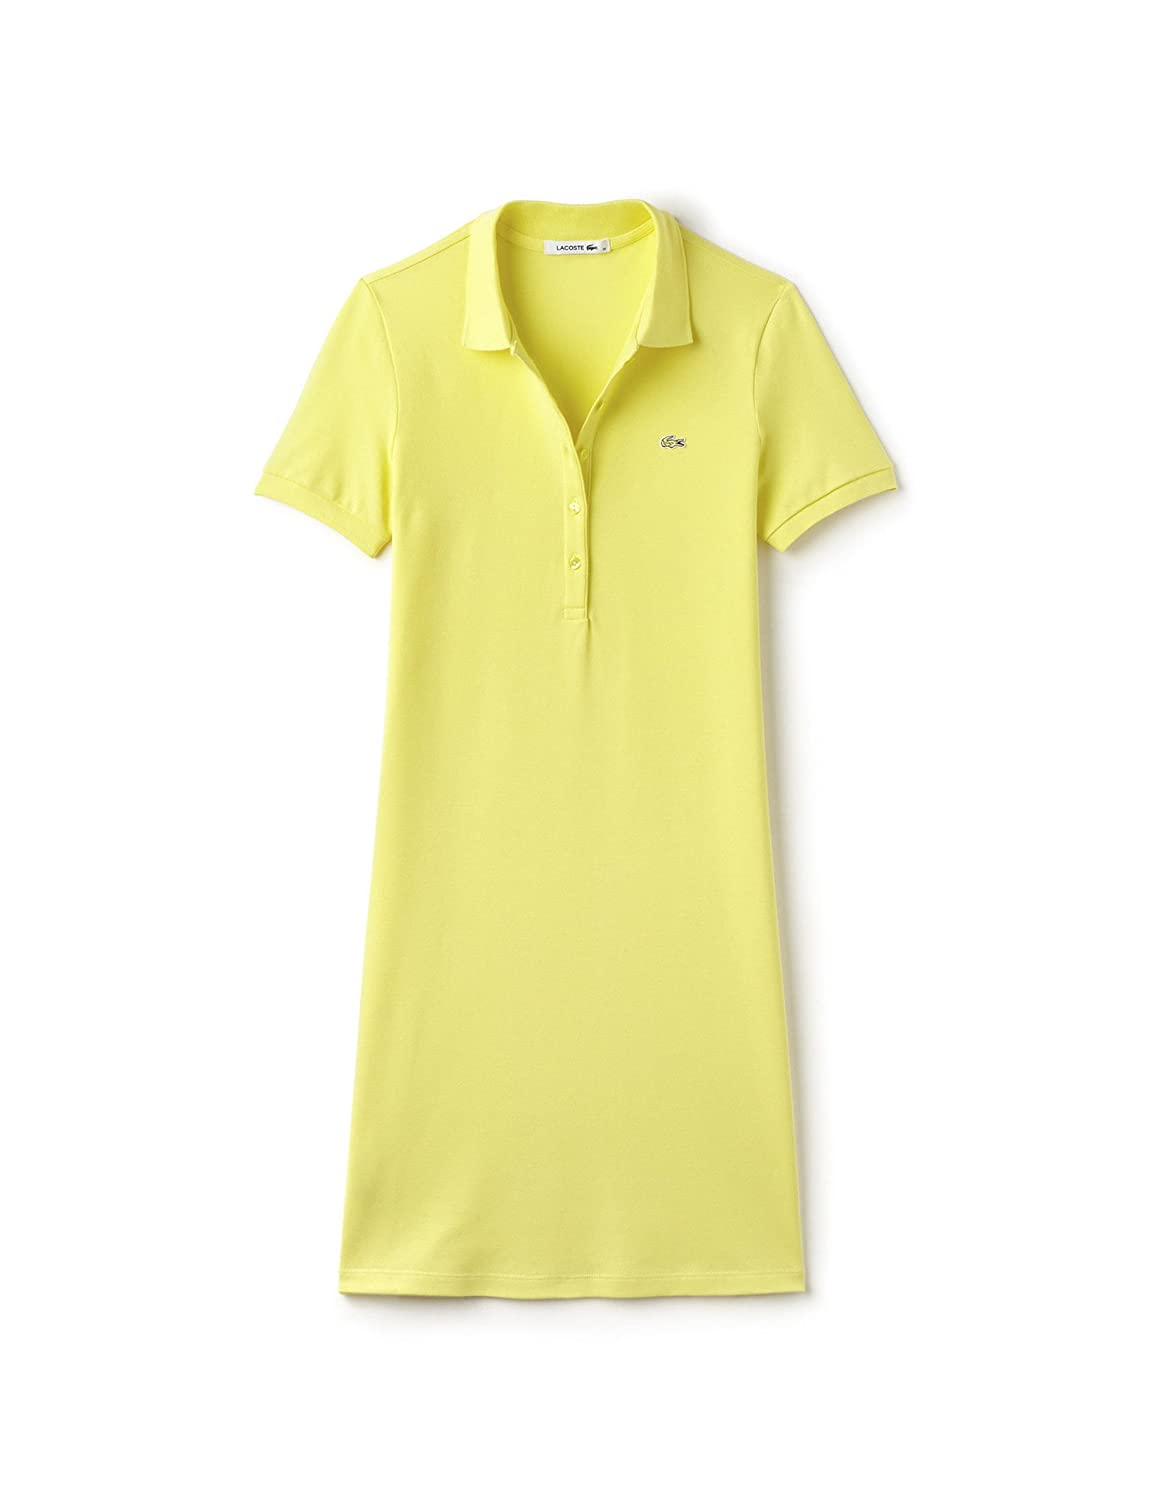 5c29125c06 Lacoste Women's Women's Yellow Pique Polo Dress with Logo. in Size ...